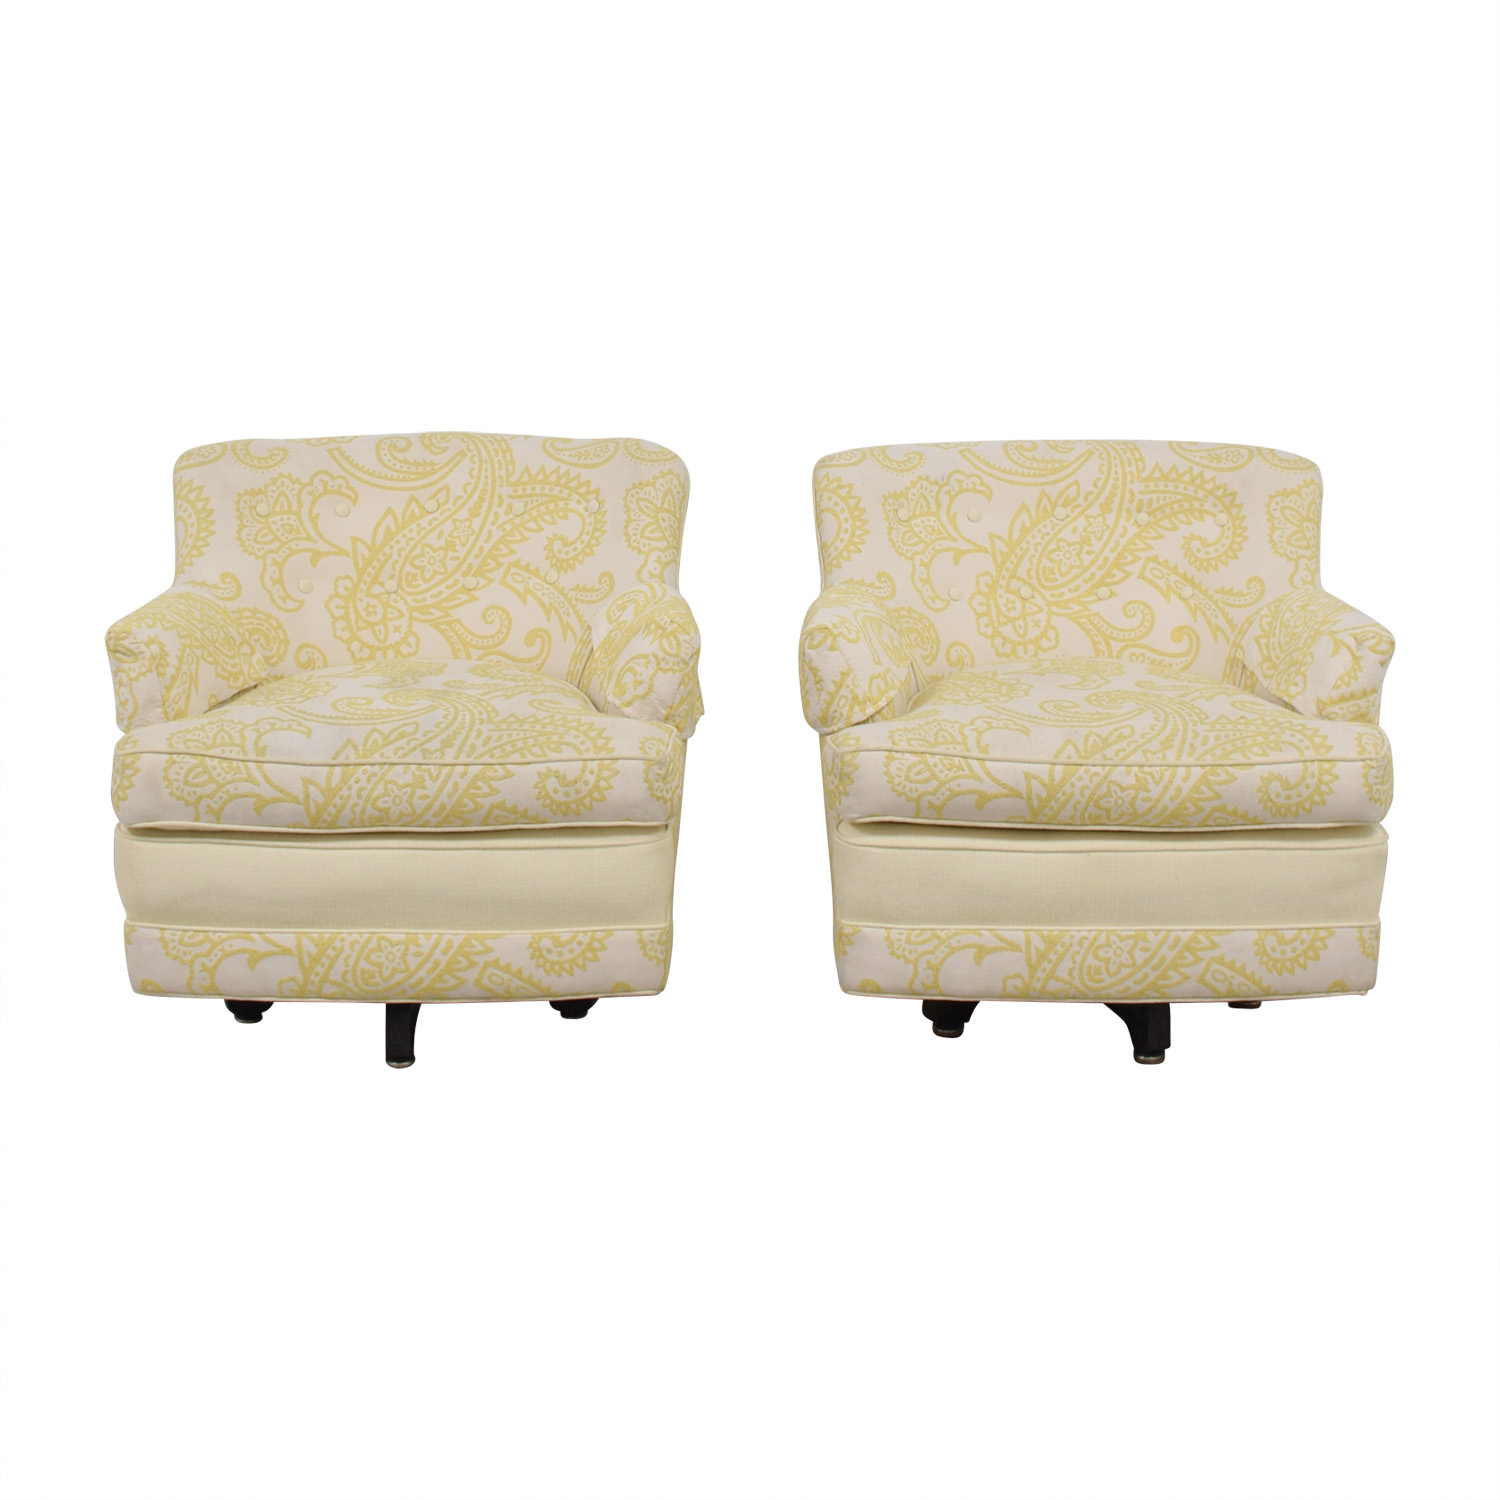 Mid Century Yellow and White Swivel Chairs price